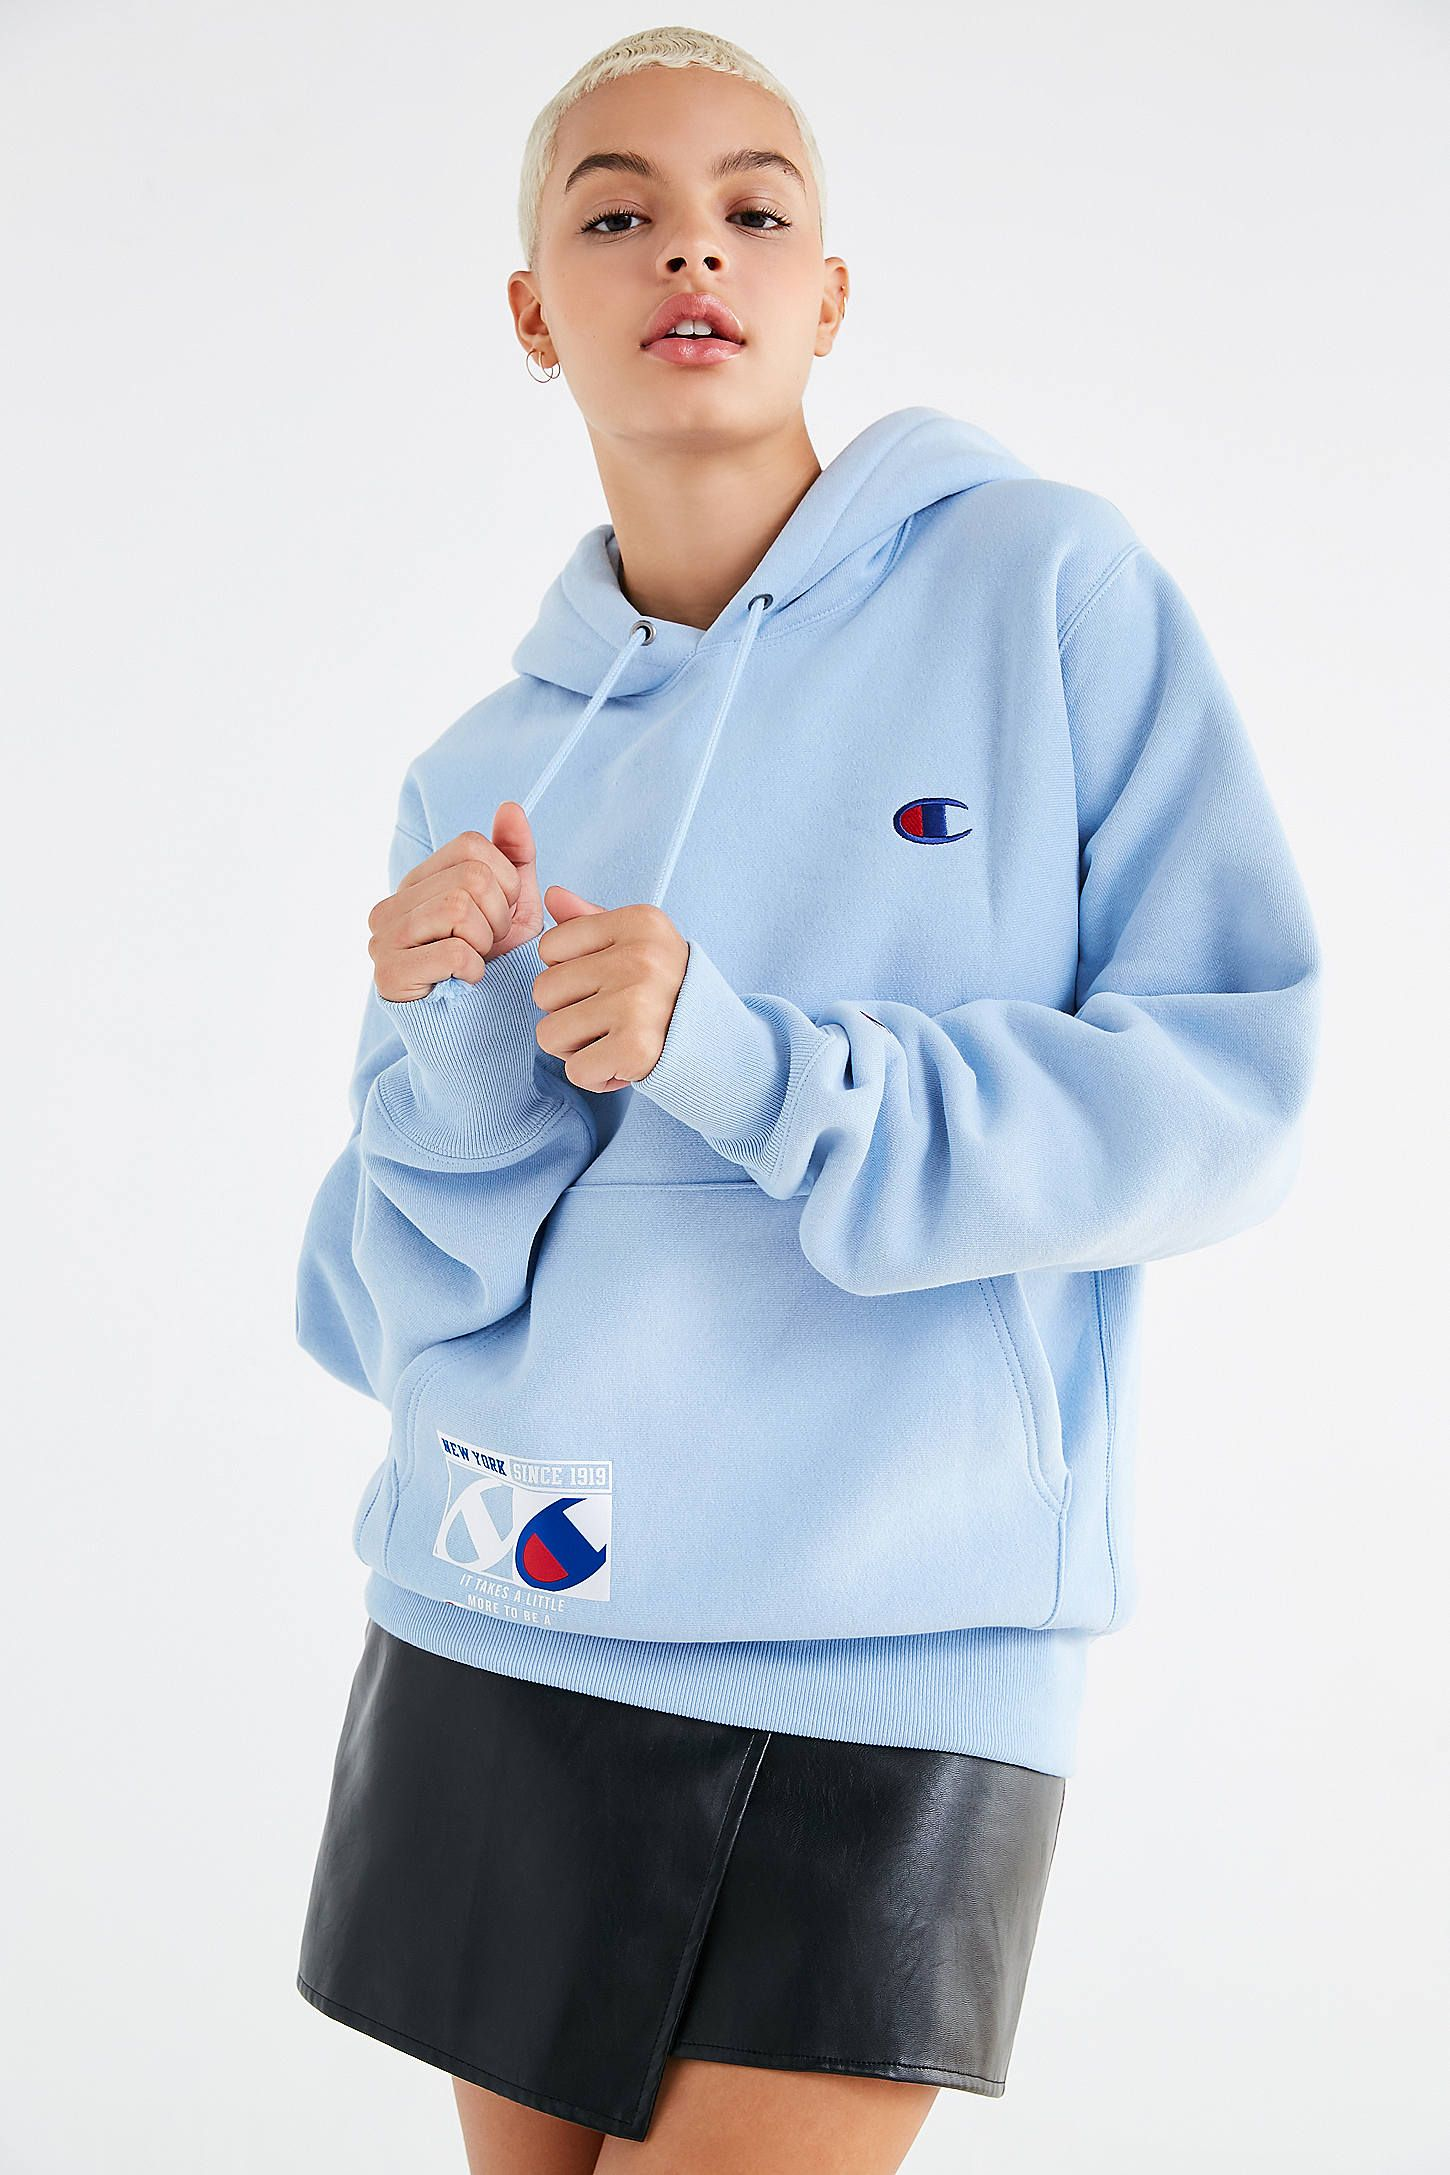 2323640e4658 Shop Champion   UO Novelty Graphic Hoodie Sweatshirt at Urban Outfitters  today. We carry all the latest styles